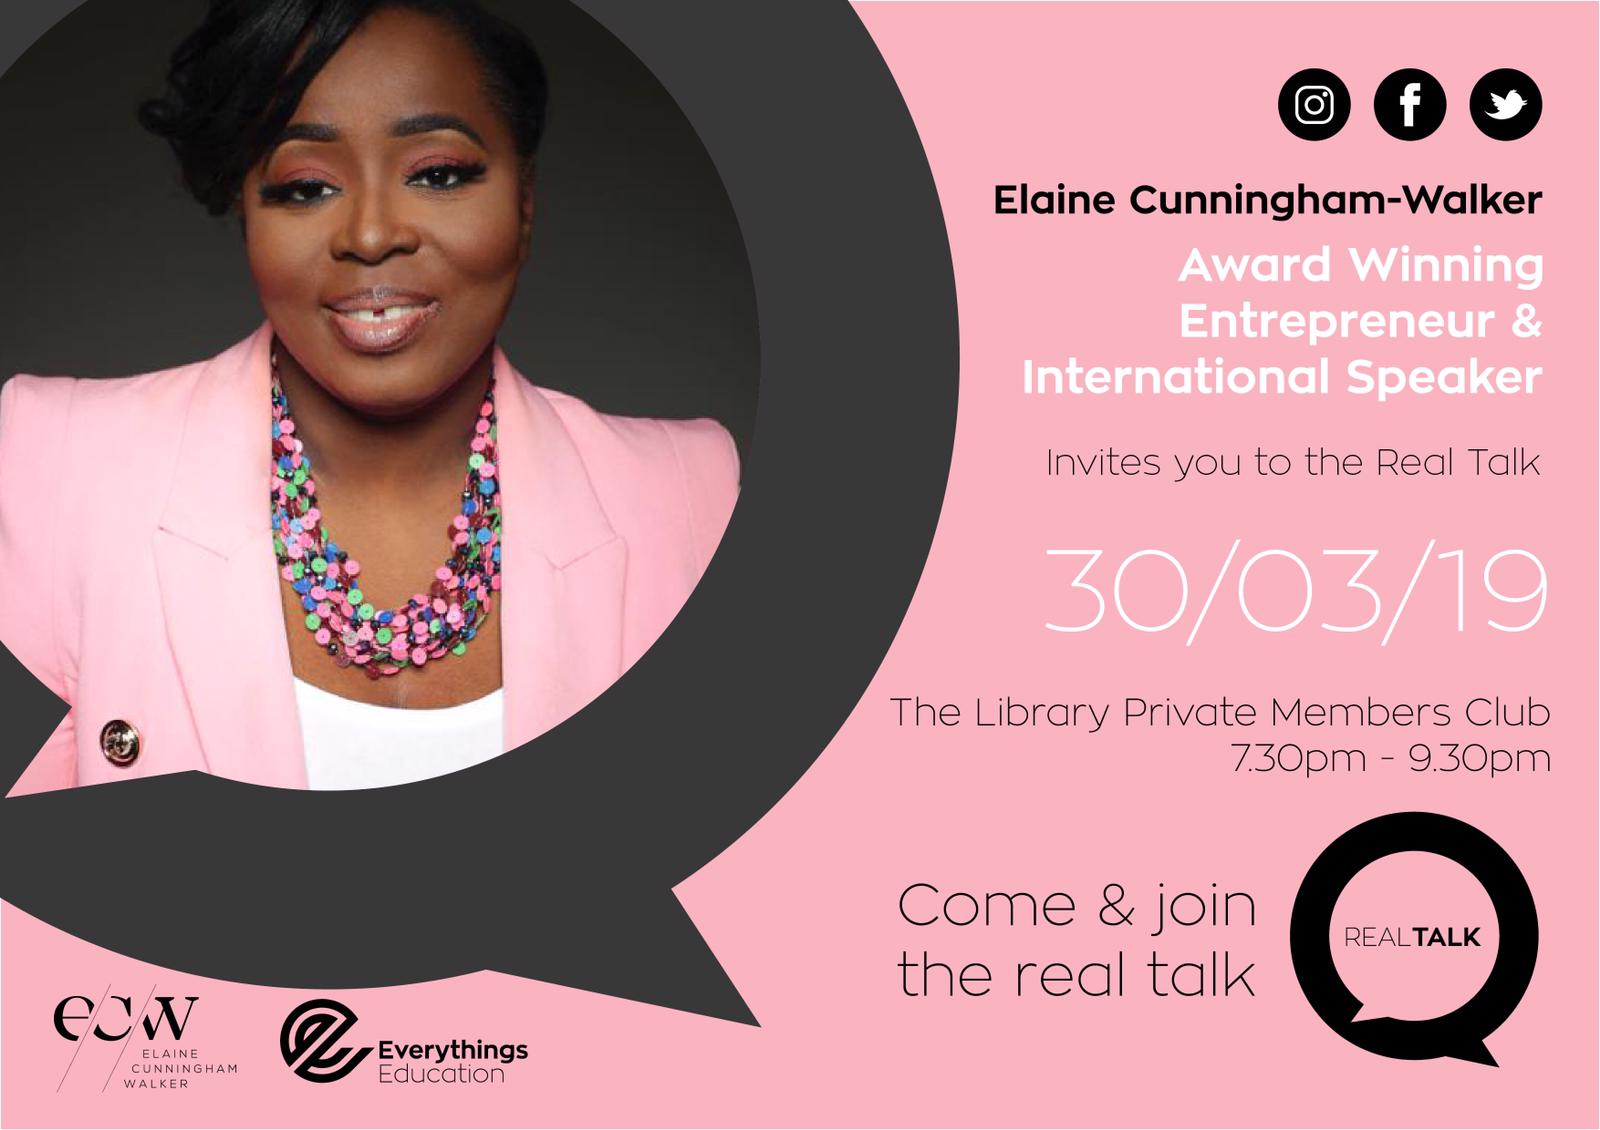 "Real Talk - Come join inspired women share empowering stories.. A gathering led by Life Coach, Award Winning Entrepreneur, International Speaker and Mother to ""Child Genius"" finalists, Elaine Cunningham-Walker. Get an early ticket here!"